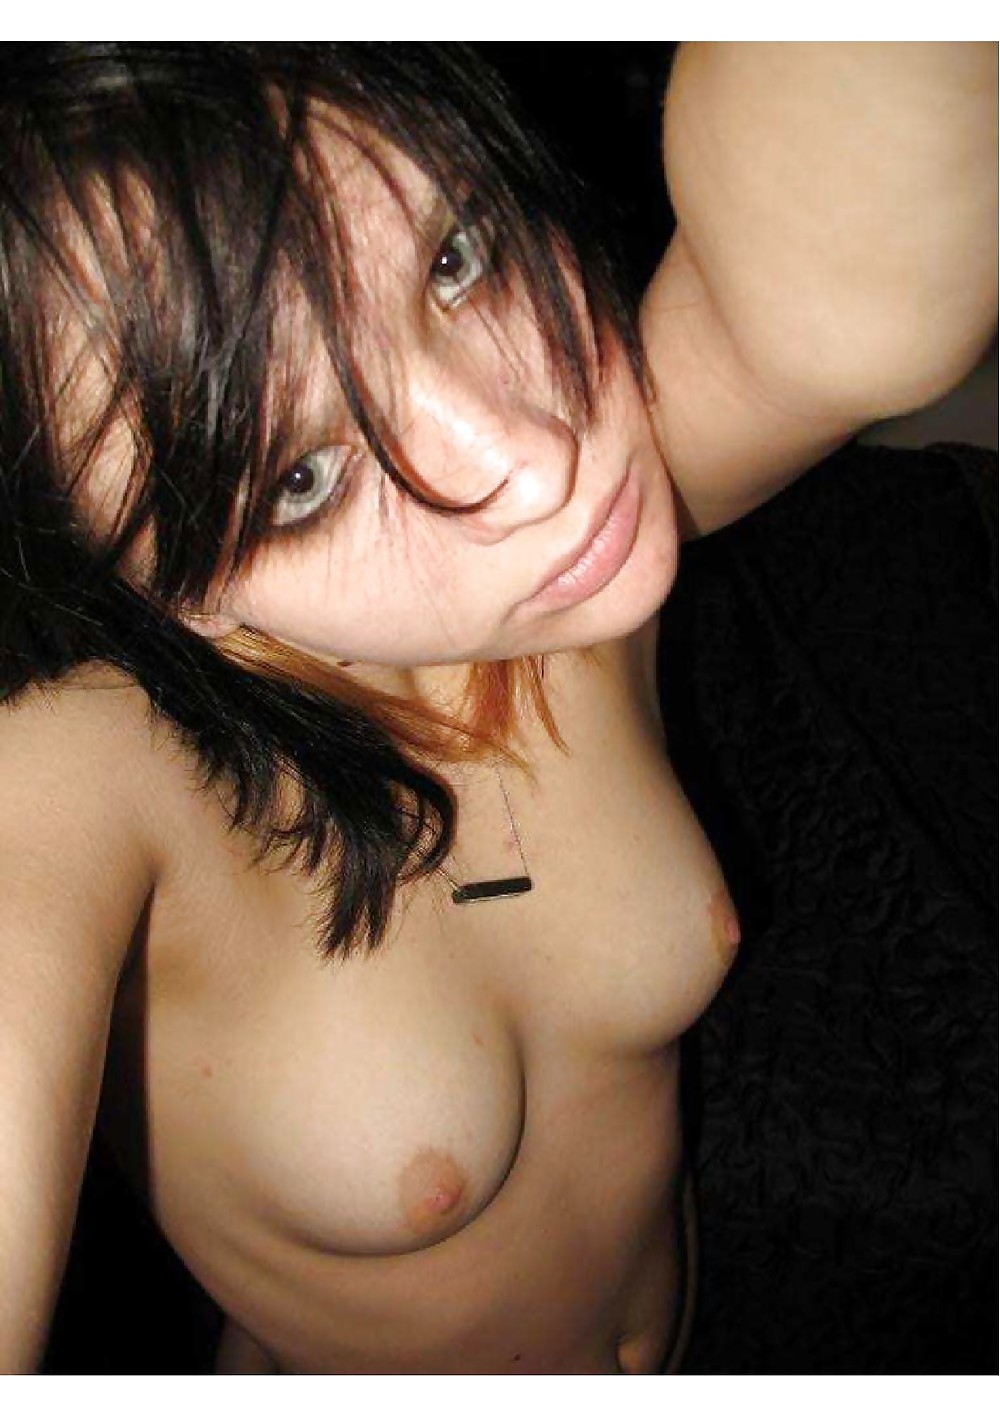 Daily Hot Teen Picture Galleries 5